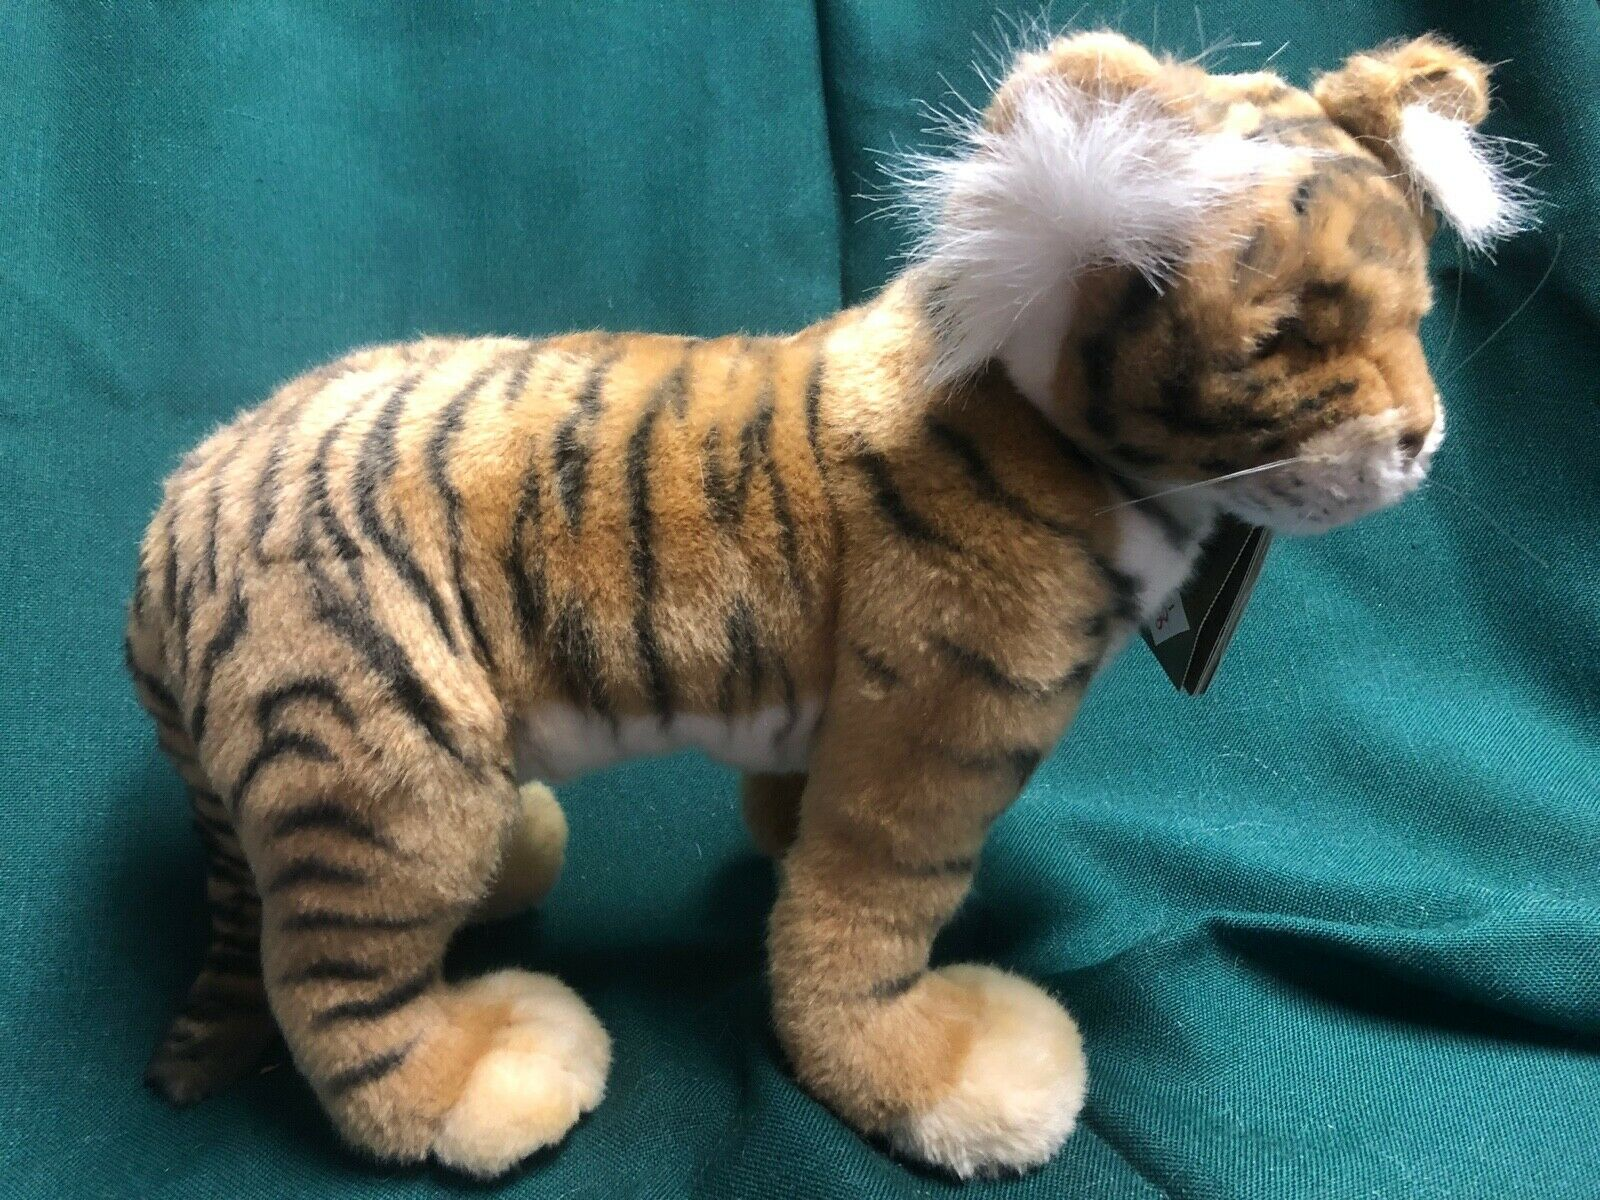 HANSA Stuffed Animal Plush Realistic Wild Cat Standing Tiger Cub 4264 Posable